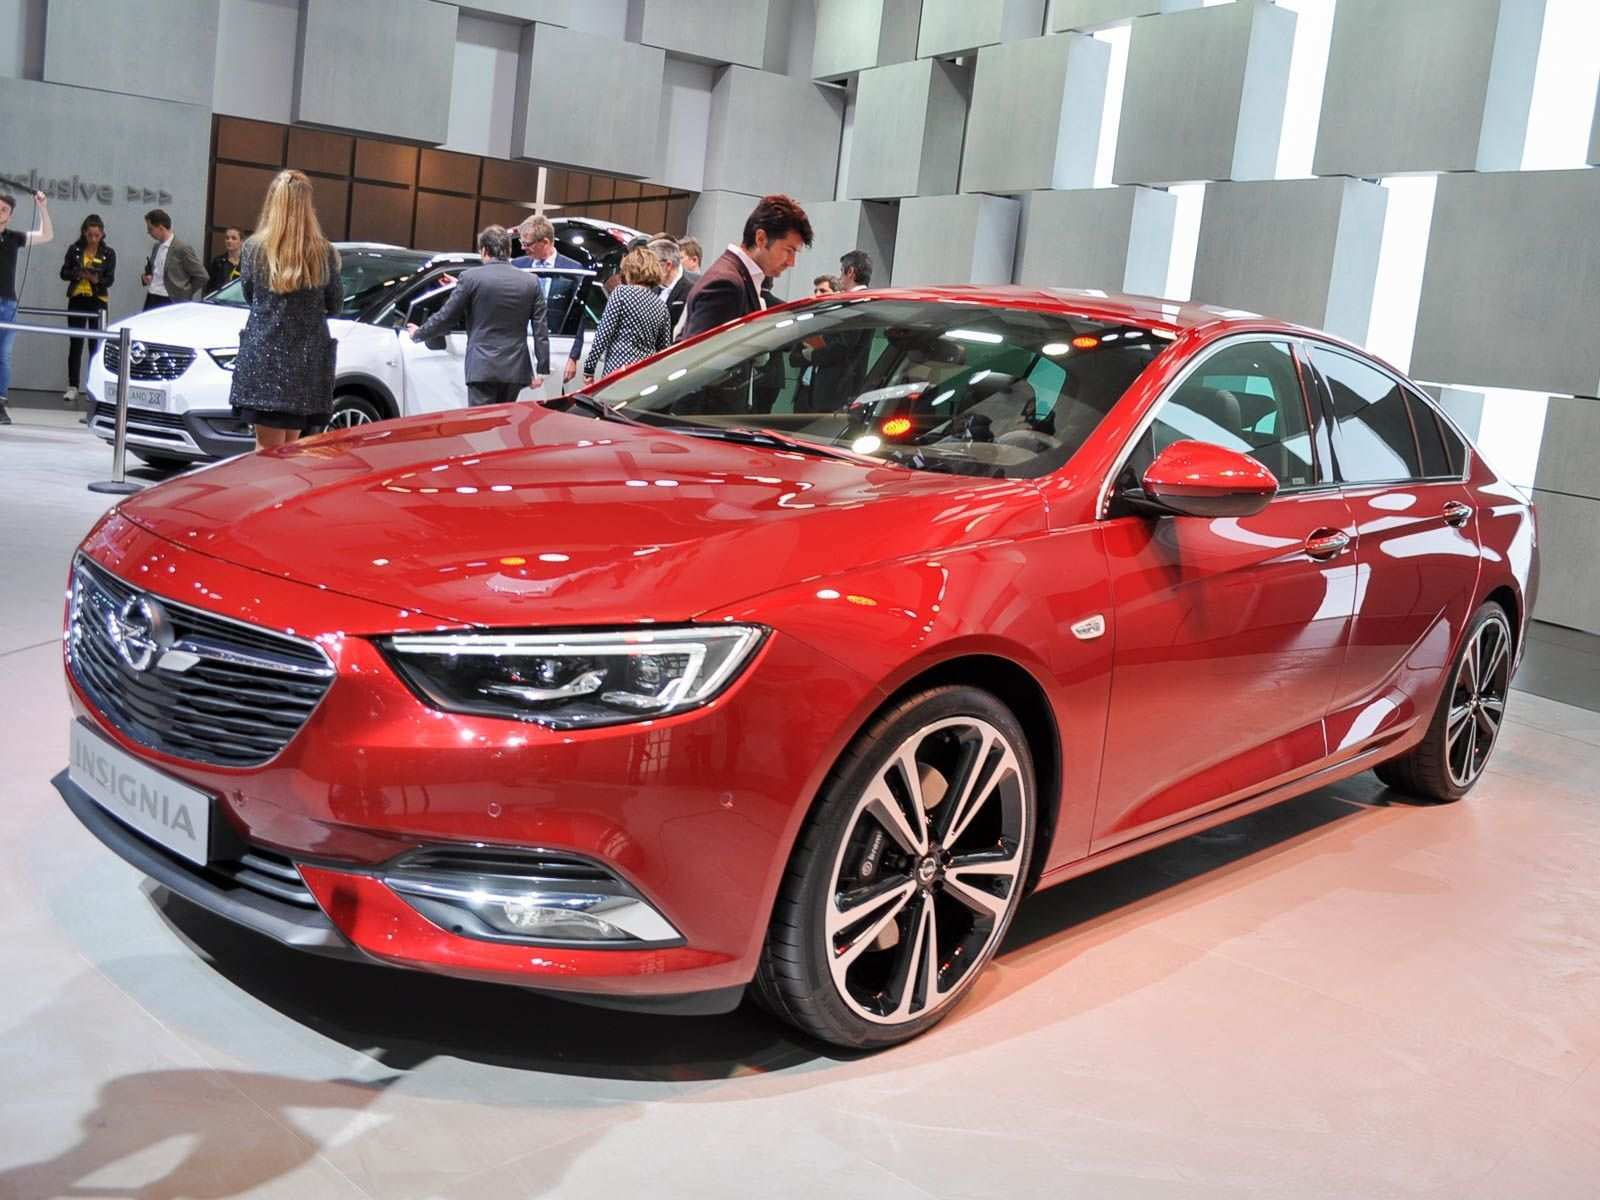 91 All New 2020 New Opel Insignia Research New